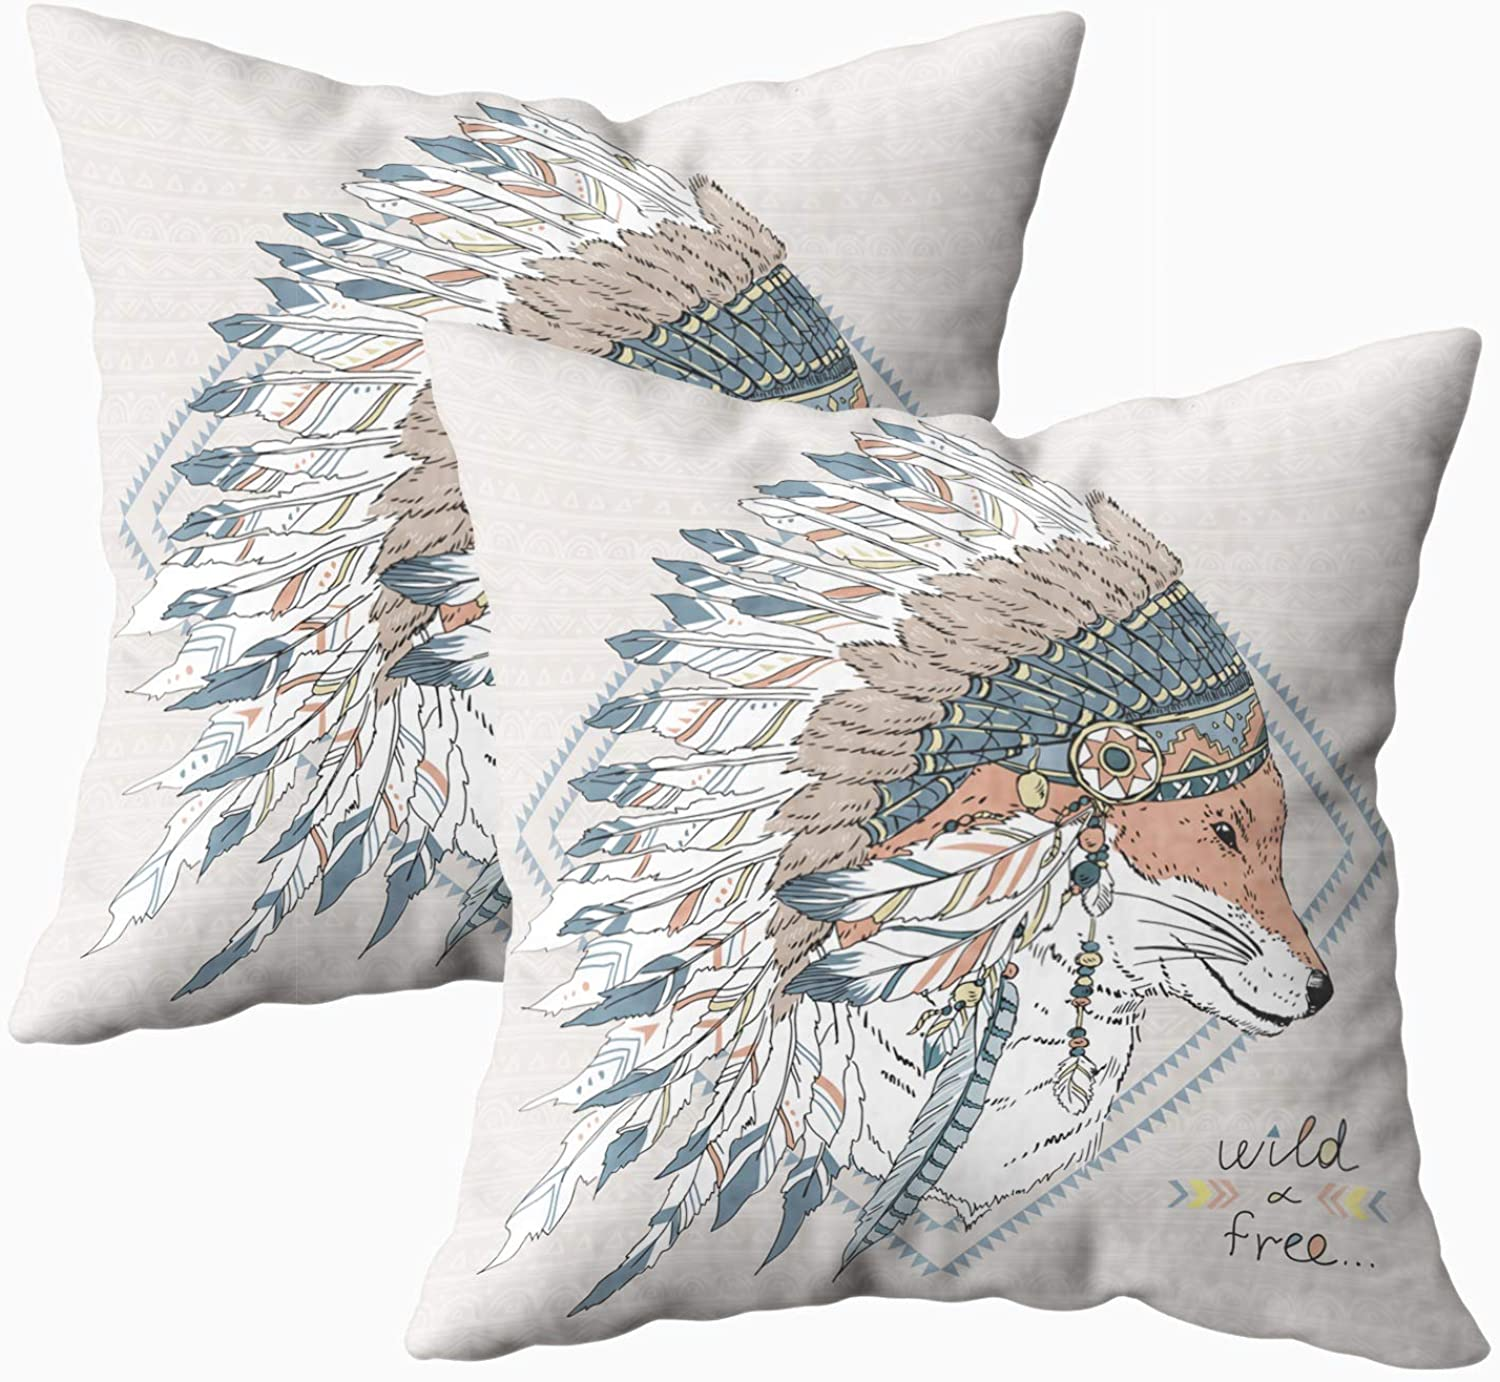 Yecationy Throw Pillows, Square Lumbar Pillow Cover Animal Fox Warrior in War Native American Poster Shirt t Home Decorative Pillow Covers 18X18 Pillow Cases,2PCS